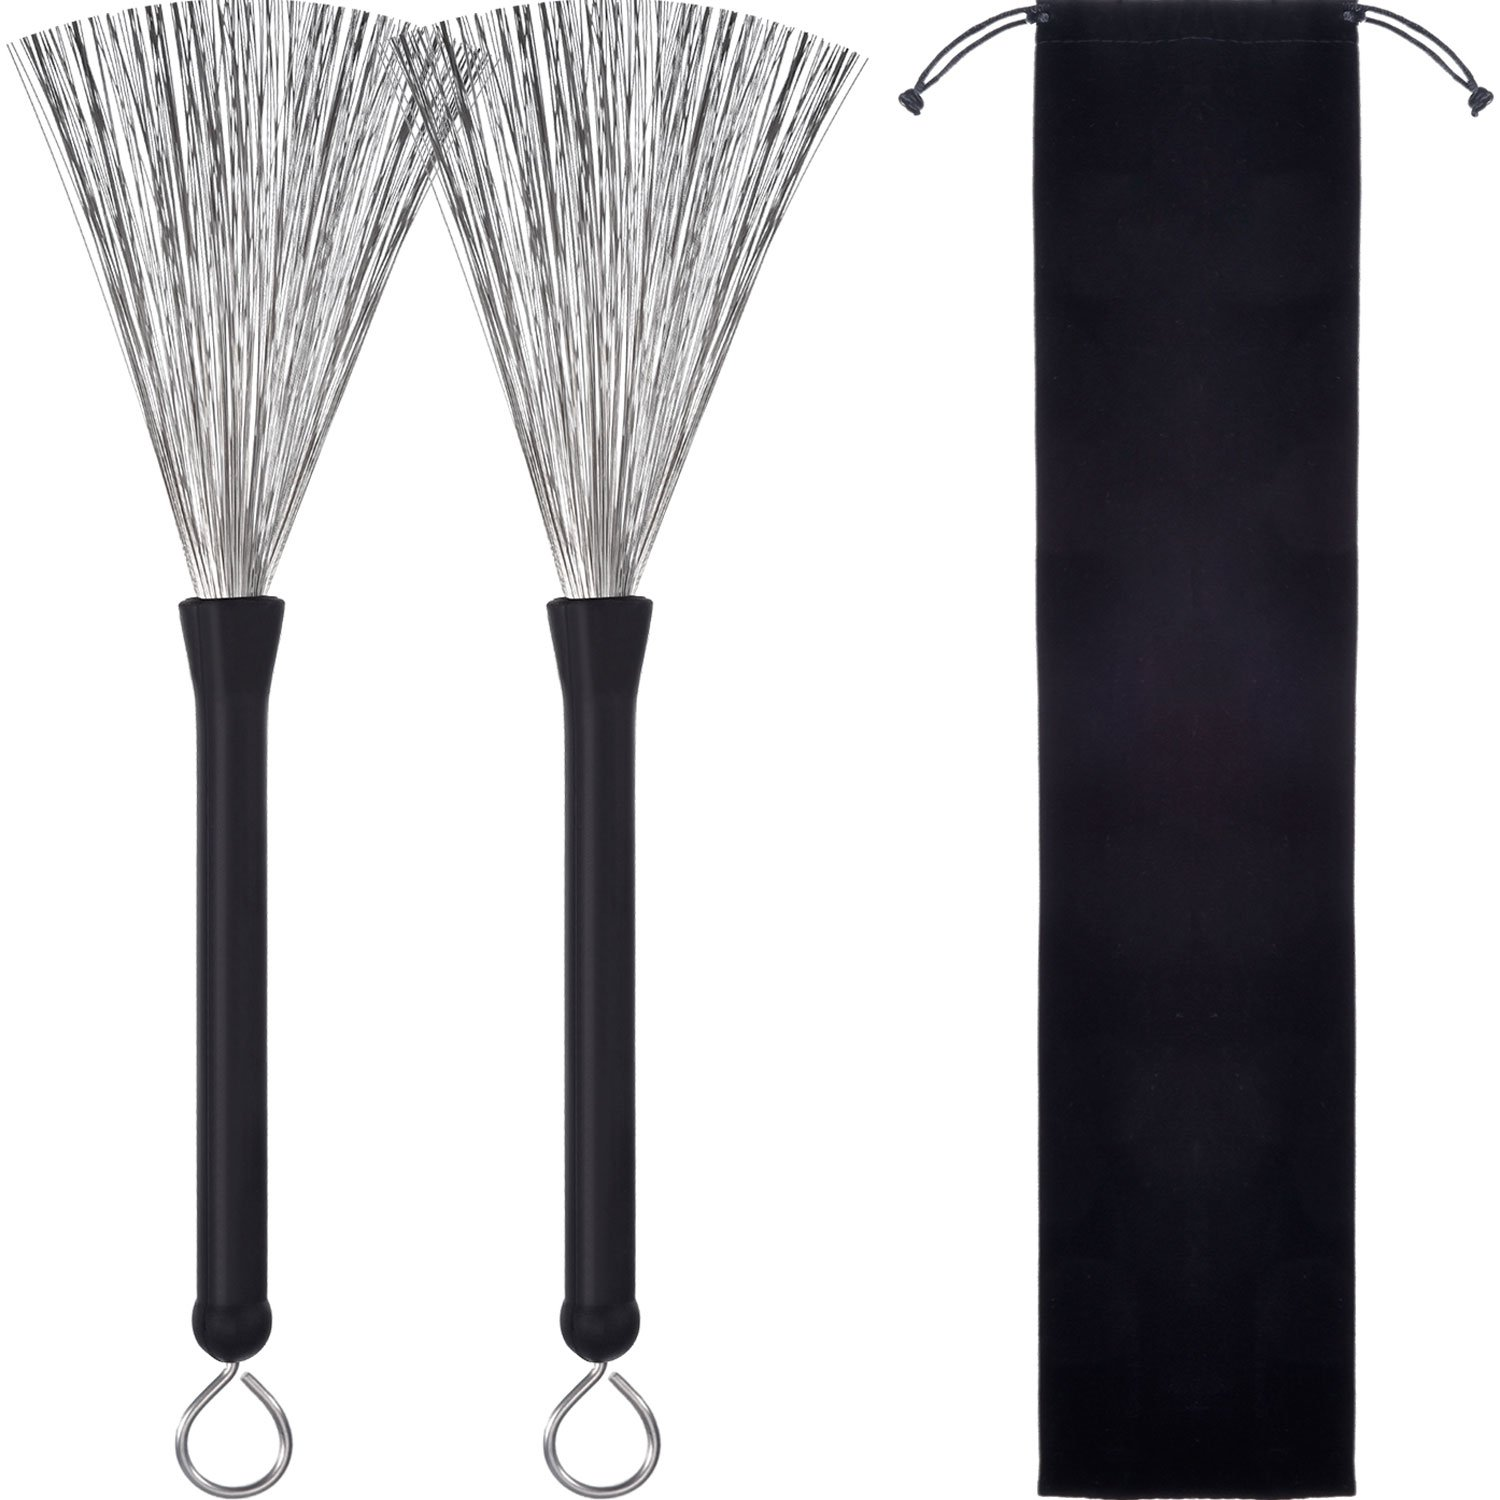 Pangda 1 Pair Drum Brushes Retractable Wire Brushes Drums Drum Sticks Brush with Comfortable Rubber Handles